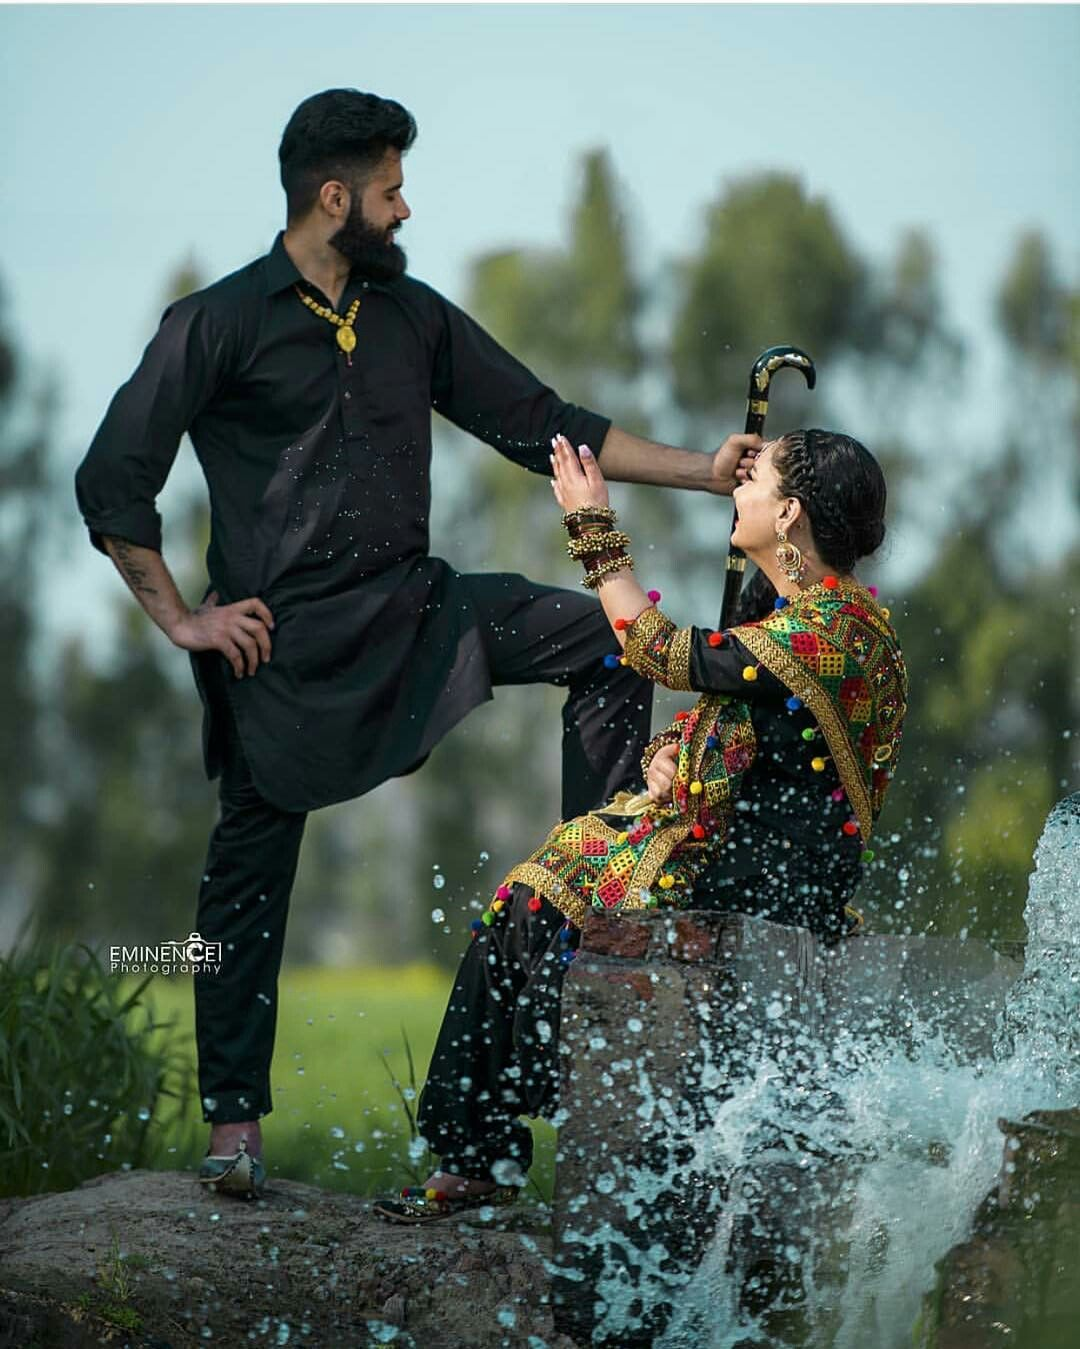 Pin by manjot kaur on Couples | Wedding couple pictures, Wedding photoshoot poses, Wedding ...